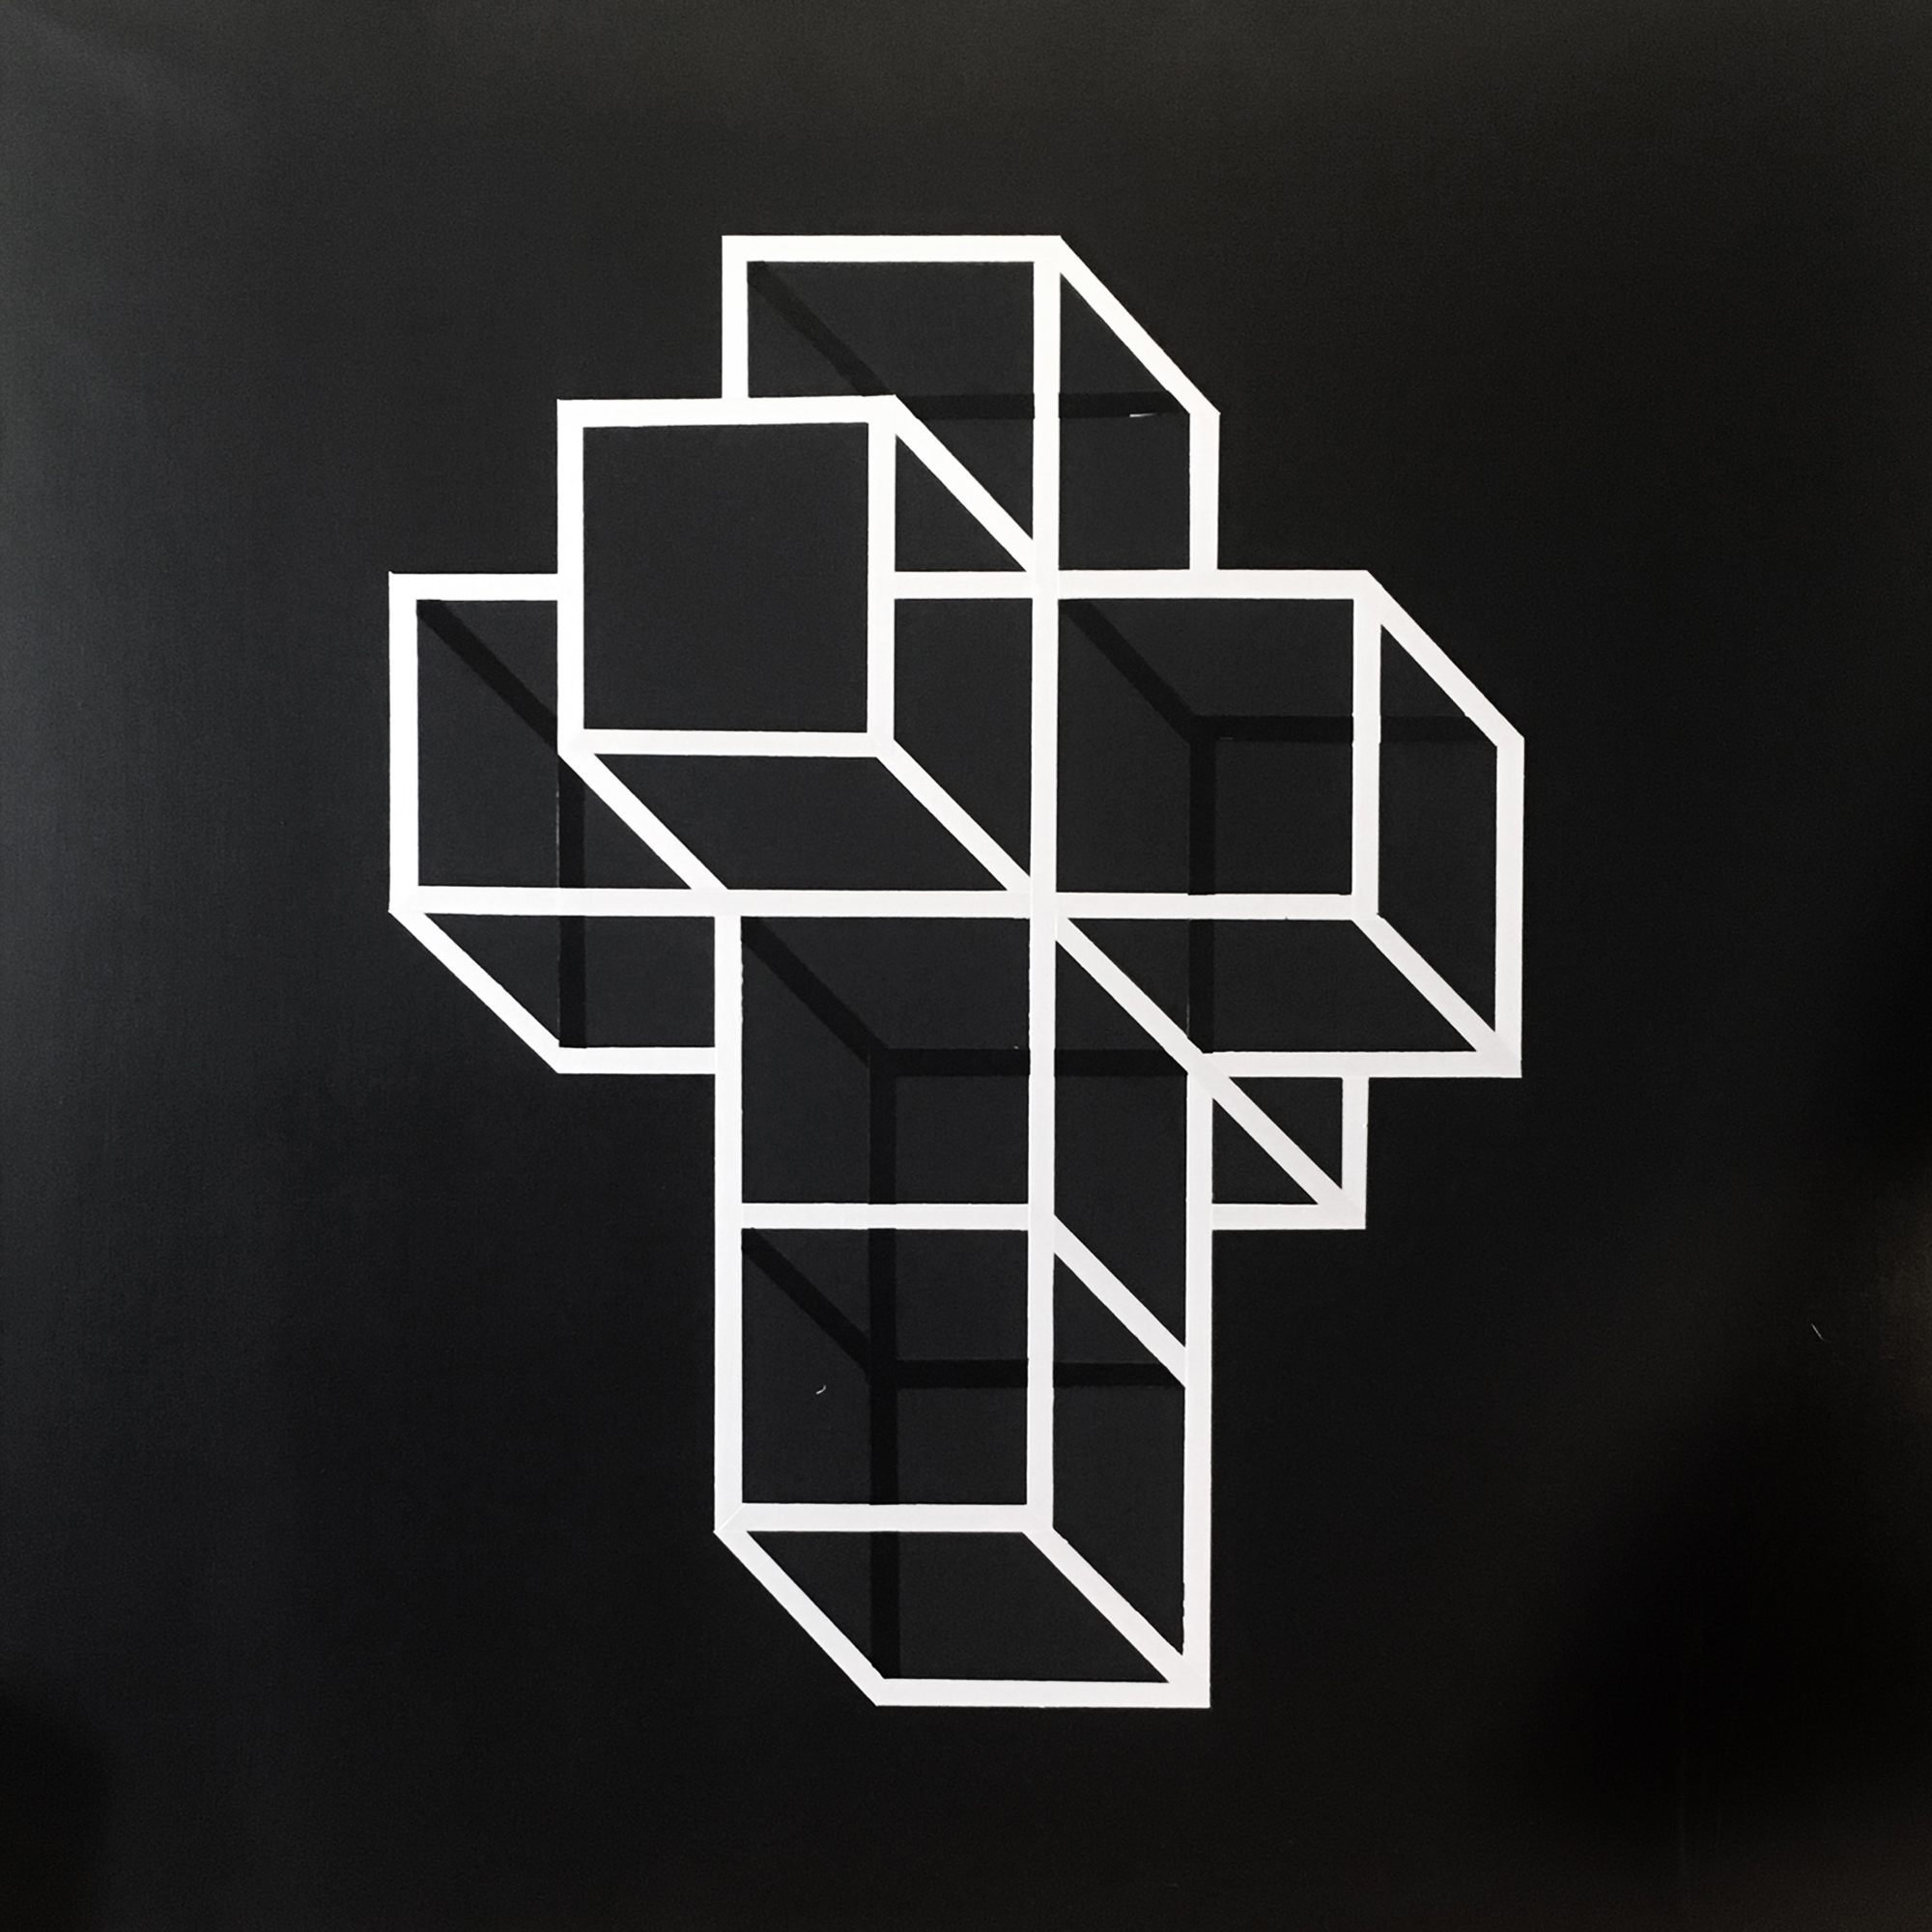 Cubic cross